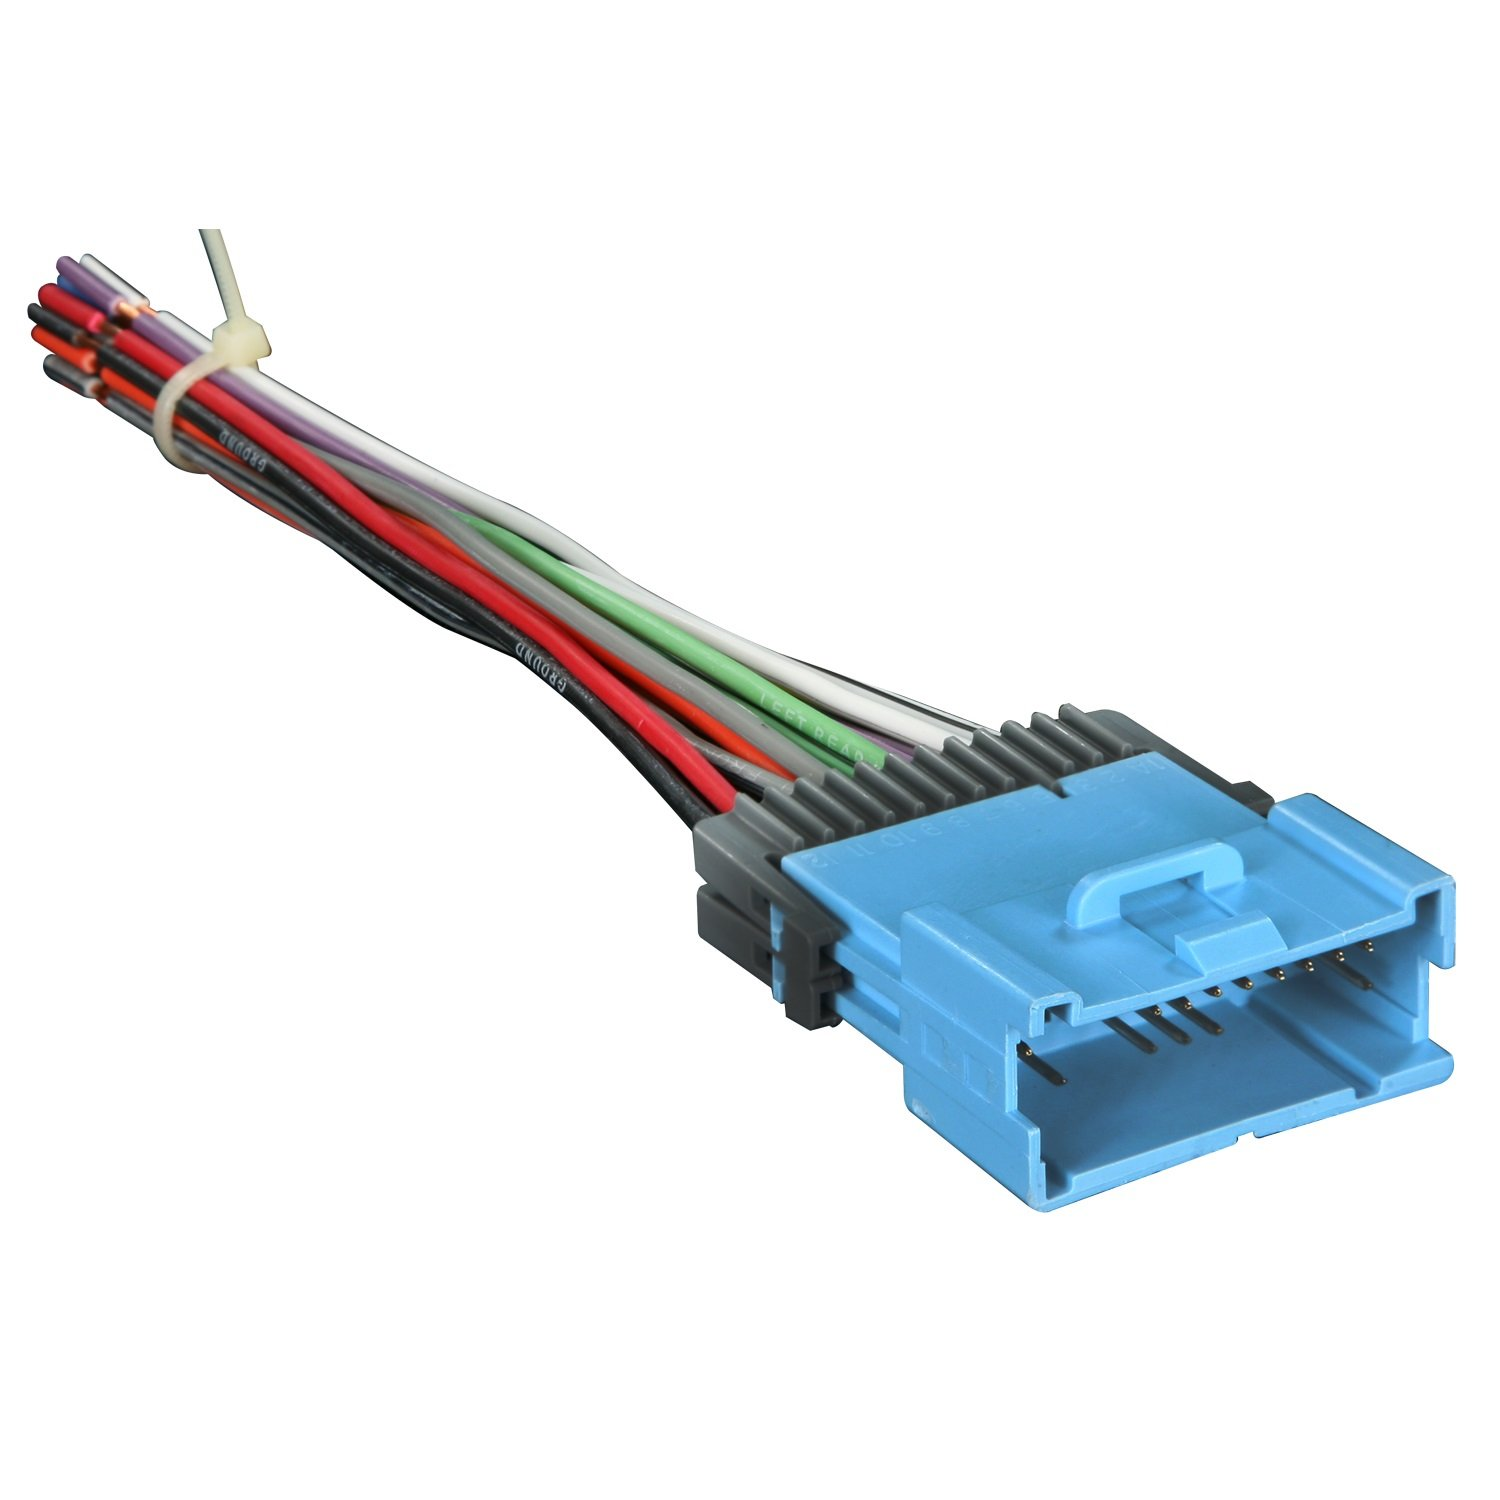 61ruWw 2aJL._SL1500_ amazon com metra 70 2102 radio wiring harness for gm 04 05 car GM Wiring Color Codes at webbmarketing.co